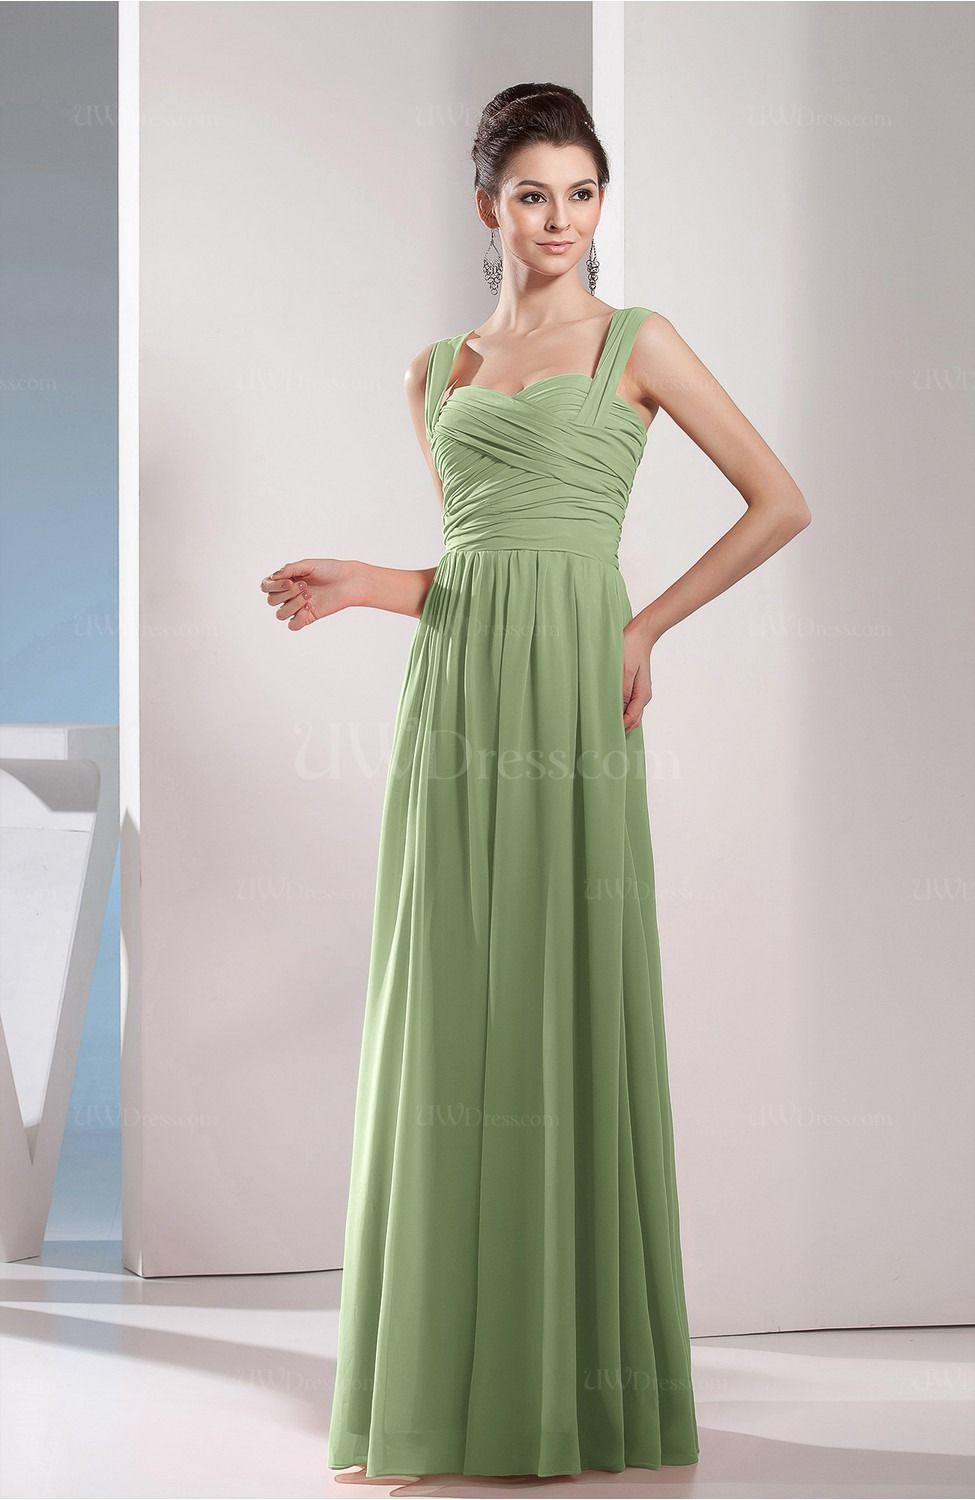 Ideas sage green wedding dress sage green wedding dresses browse ideas sage green wedding dress sage green wedding dresses browse pictures and high quality photo 6 ombrellifo Gallery